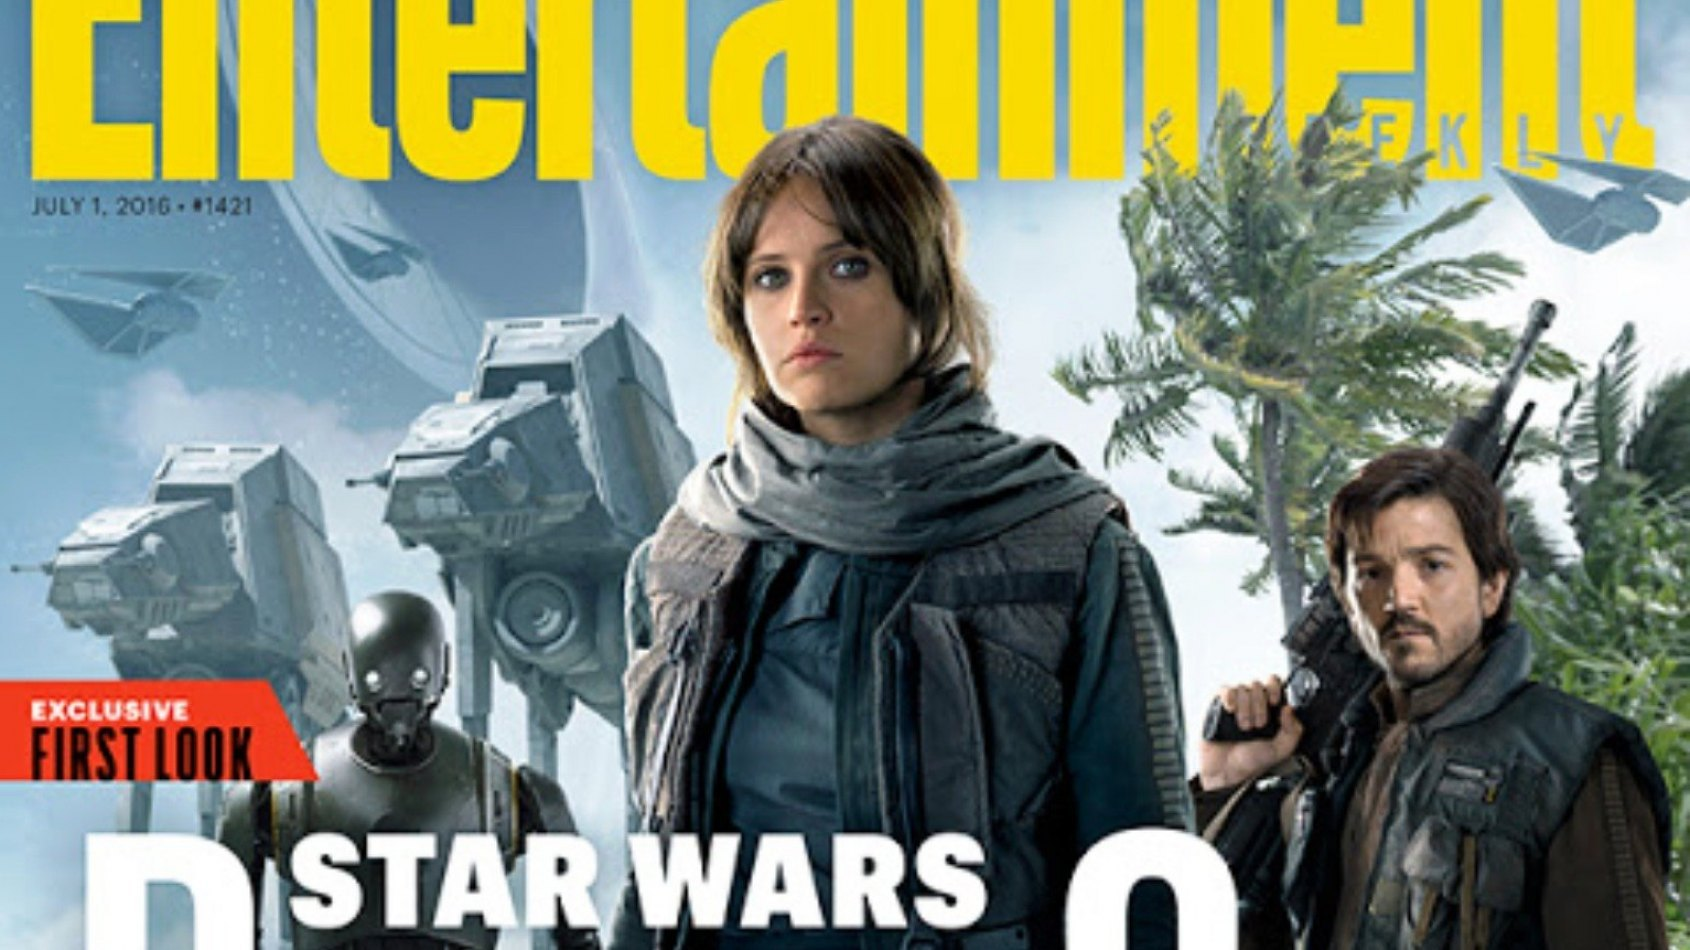 Entertainment Weekly révèle une tonne d'informations sur Rogue One